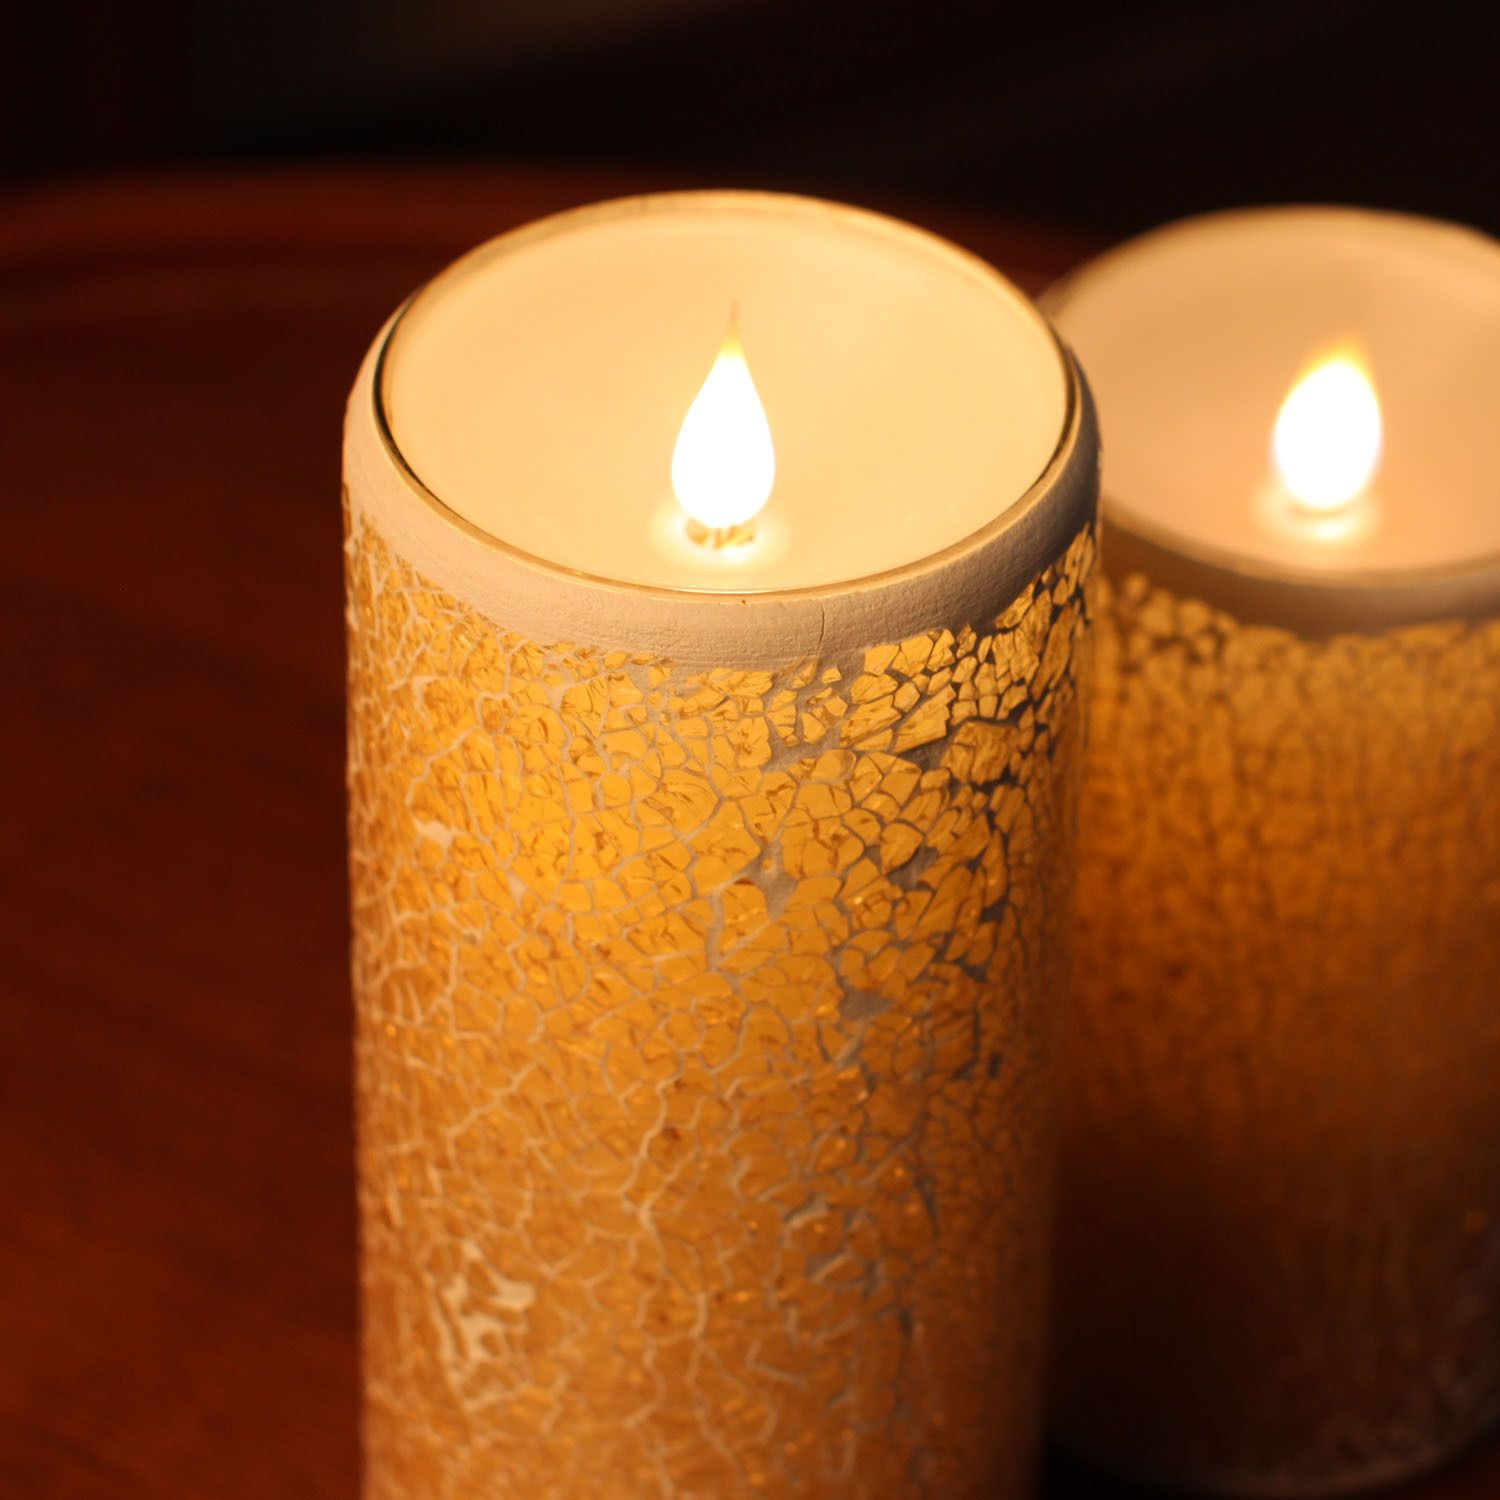 Multi Wick Candles Simplux Moving Wick Flameless Mosaic Led Candle With Remote